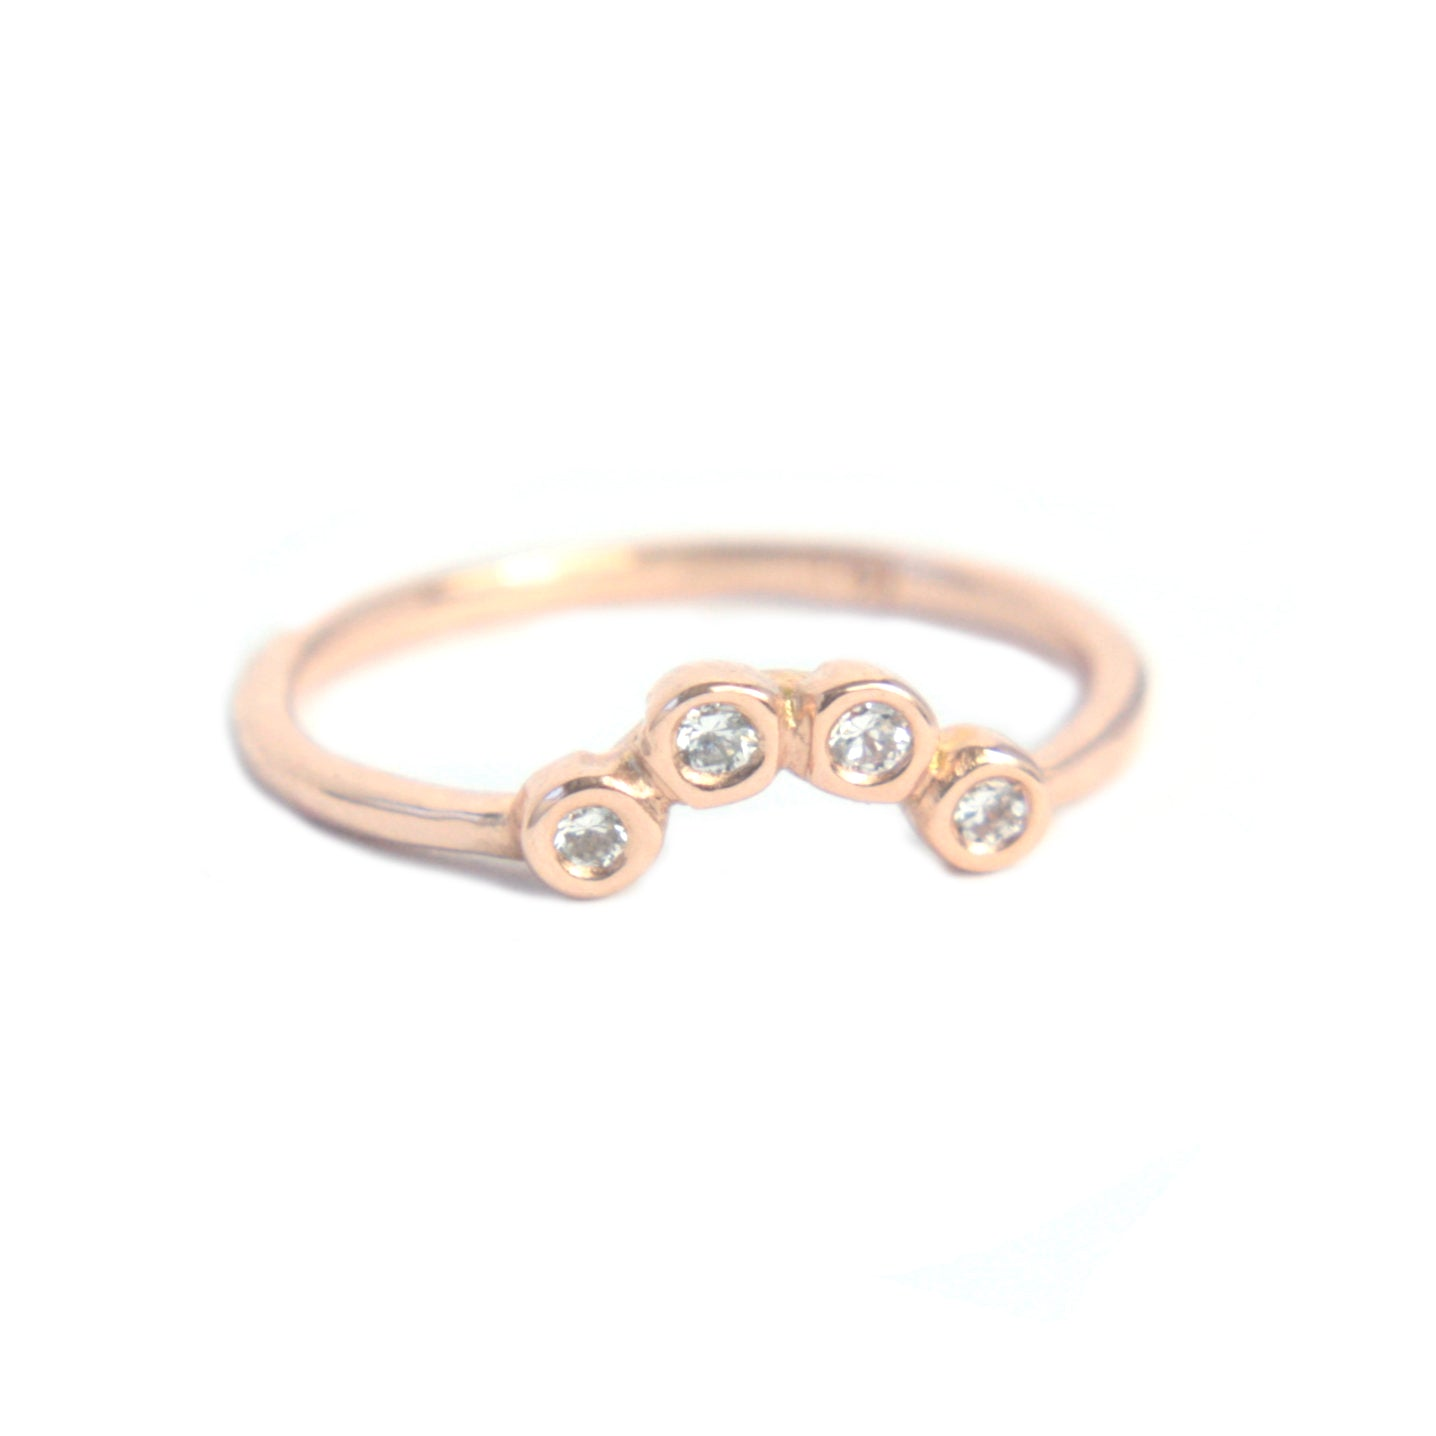 Diamond Wave Shape Ring 14k Gold Four Diamond Ring - Manari.eu